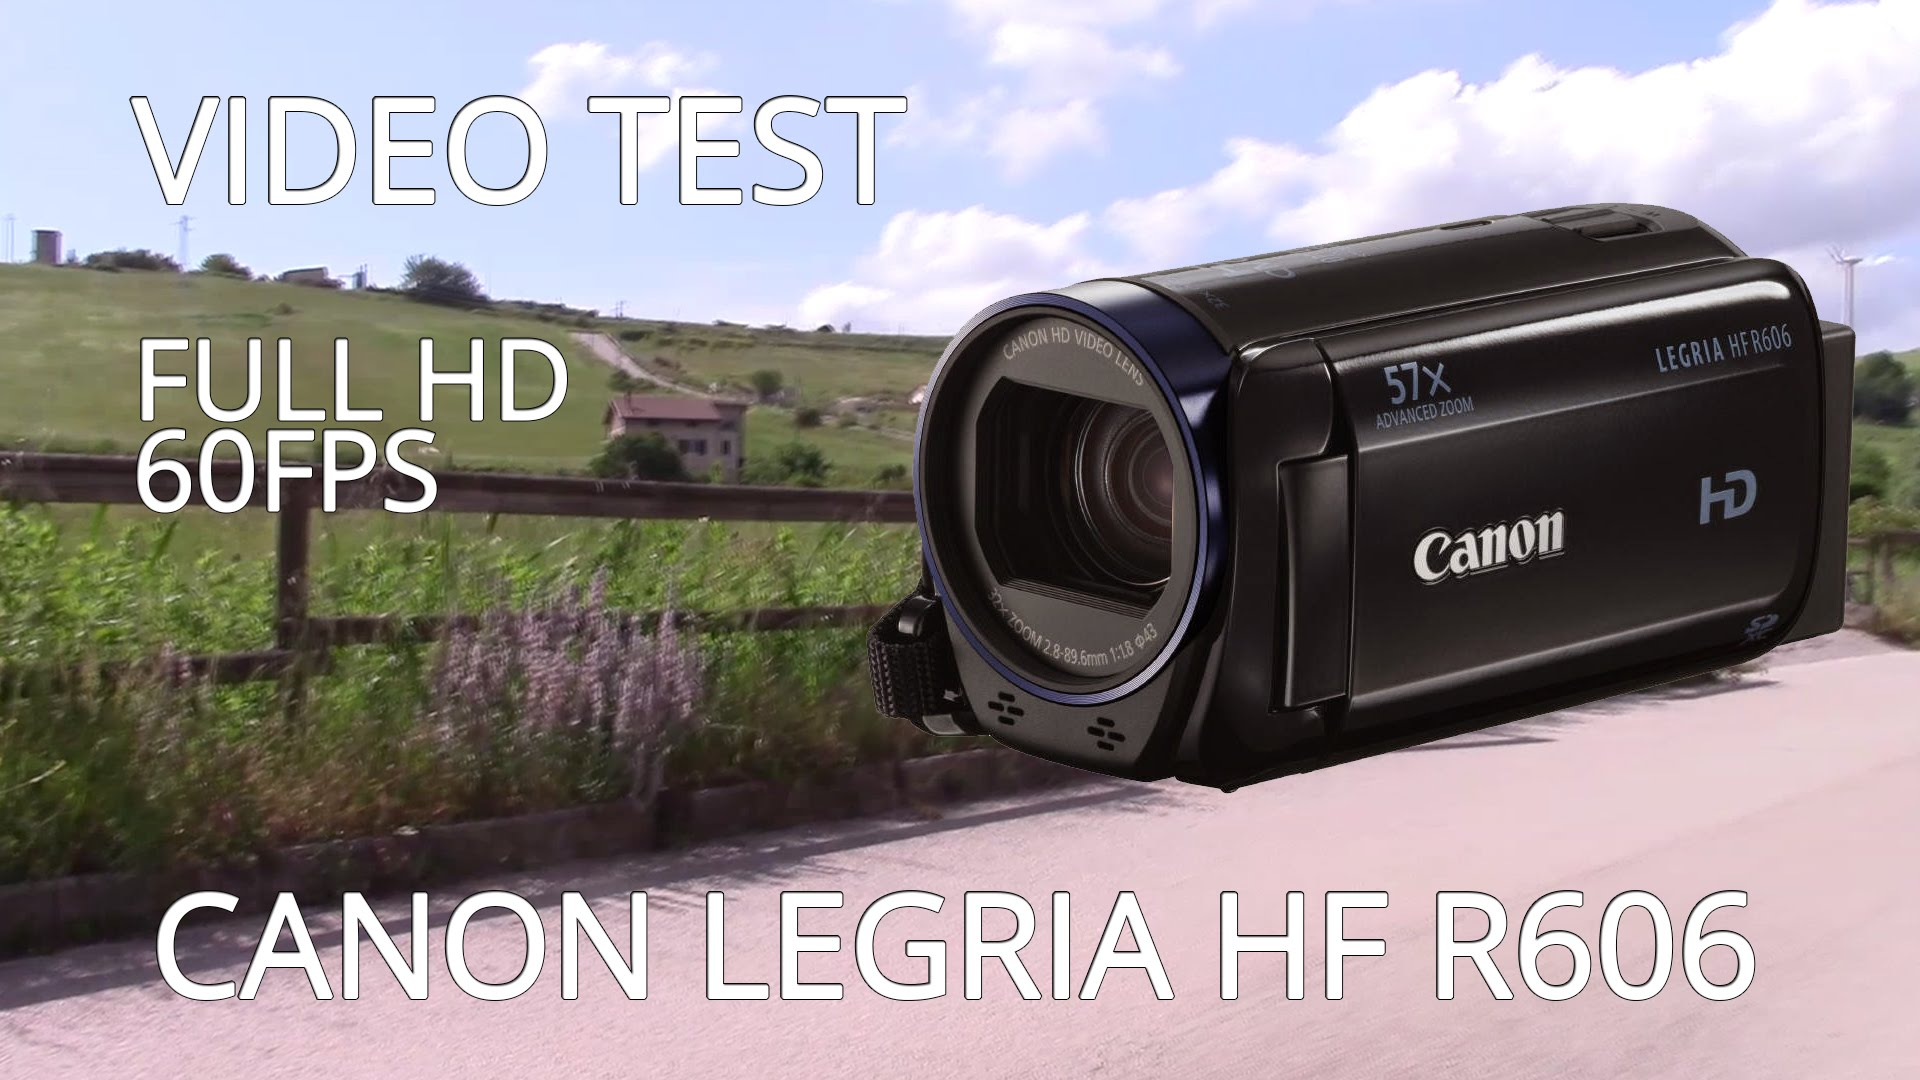 TEST VIDEO CANON LEGRIA HF R606 FULL HD 60FPS – TEST ZOOM